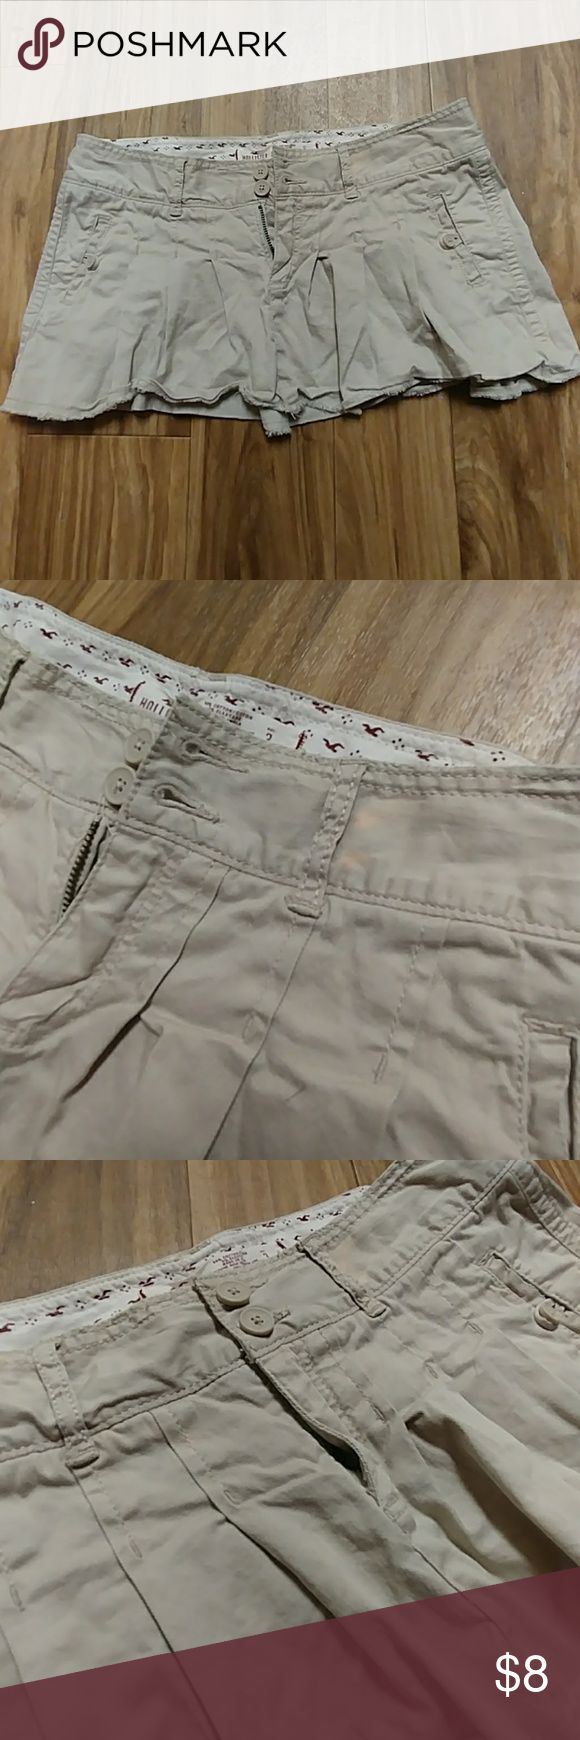 Hollister Skirt Never worn by me as its too big.[I'm a 00/0]  Tan Pleated Hollister skirt One barely noticeable stain right next to belt loop. Can easily be covered with tank top or shirt.  Has 2 pockets Buttons and zipper both fully functioning well. Hollister Skirts